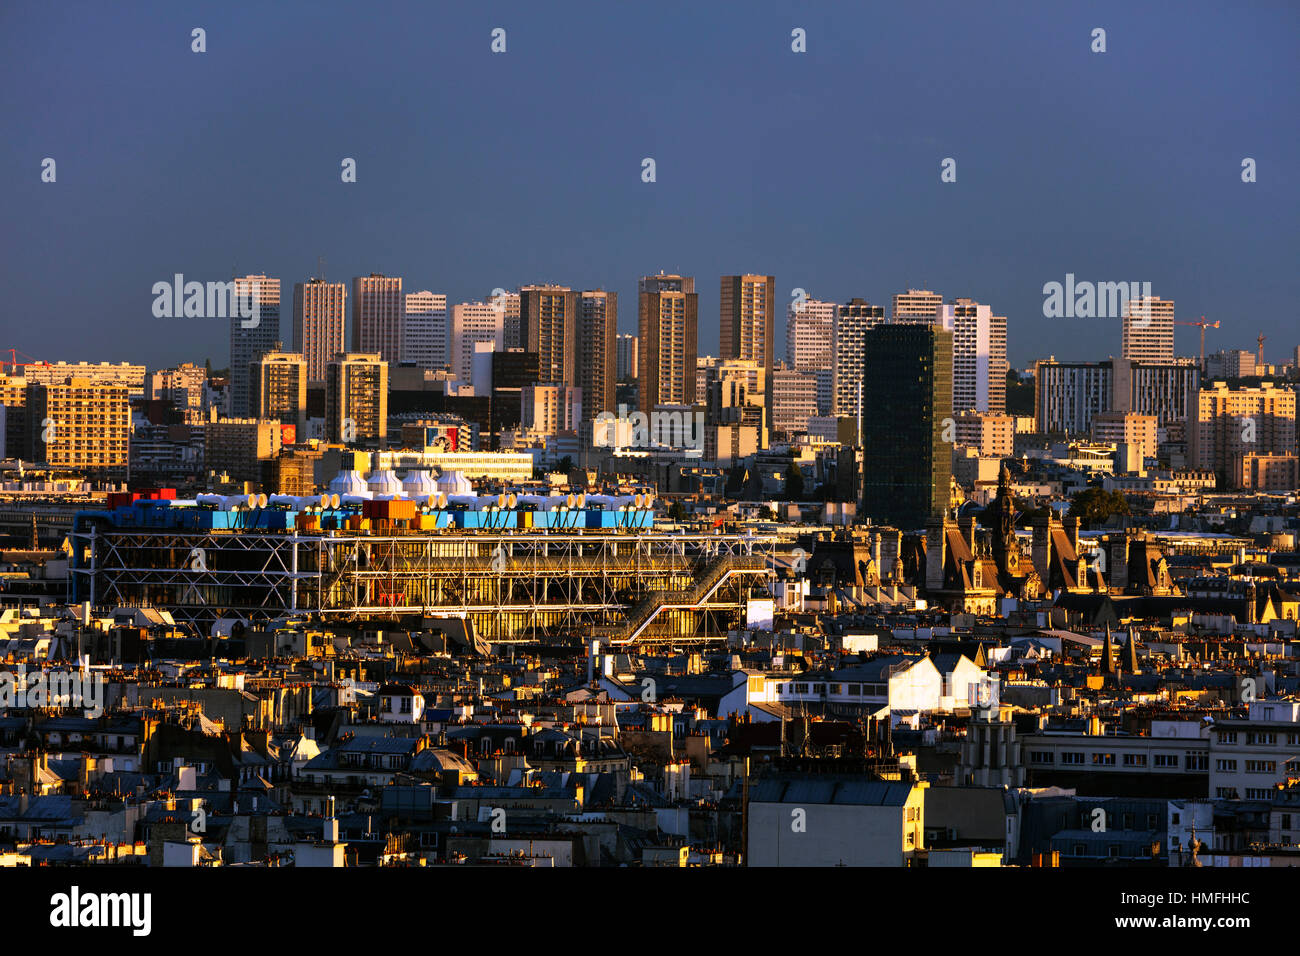 City skyline from Montmartre, Centre Georges Pompidou designed by Renzo Piano and Richard Rogers, Paris, France - Stock Image